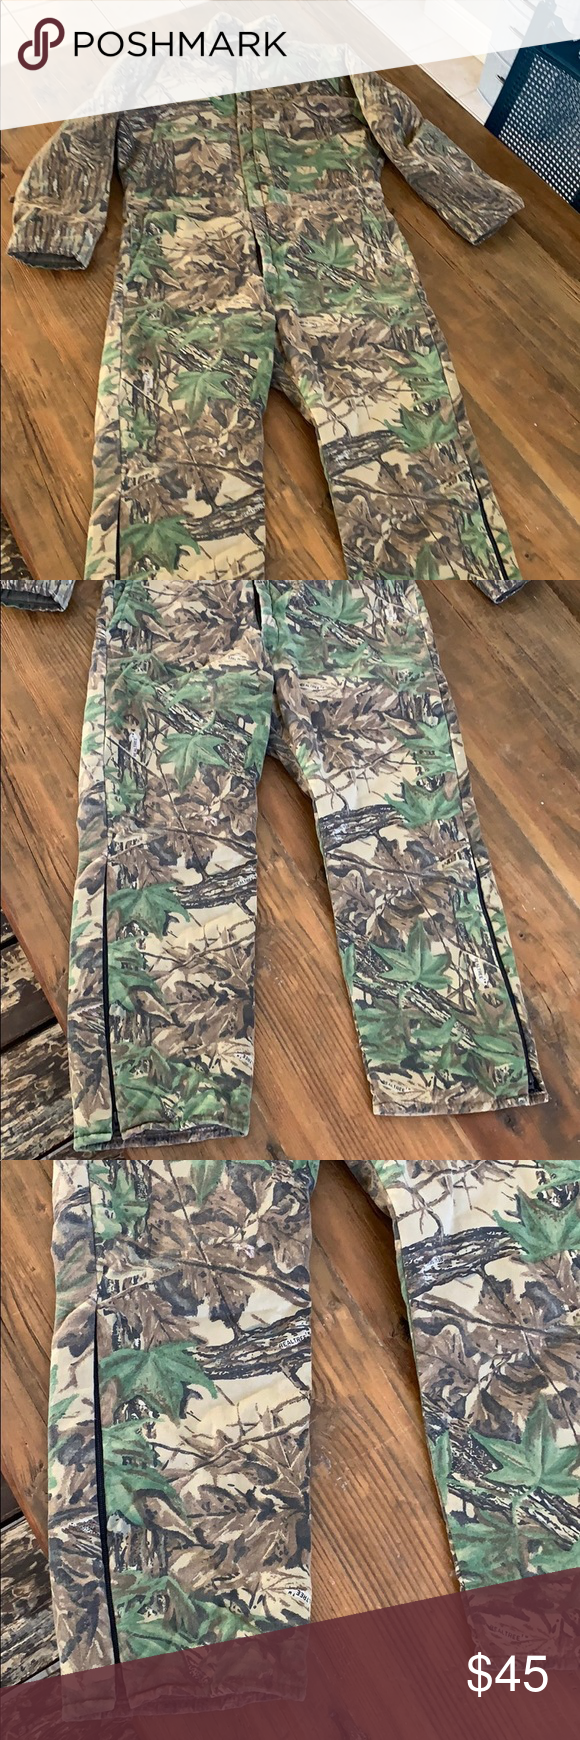 walls blizzard pruf insulated apparel hunting excellent on walls hunting clothing insulated id=96358